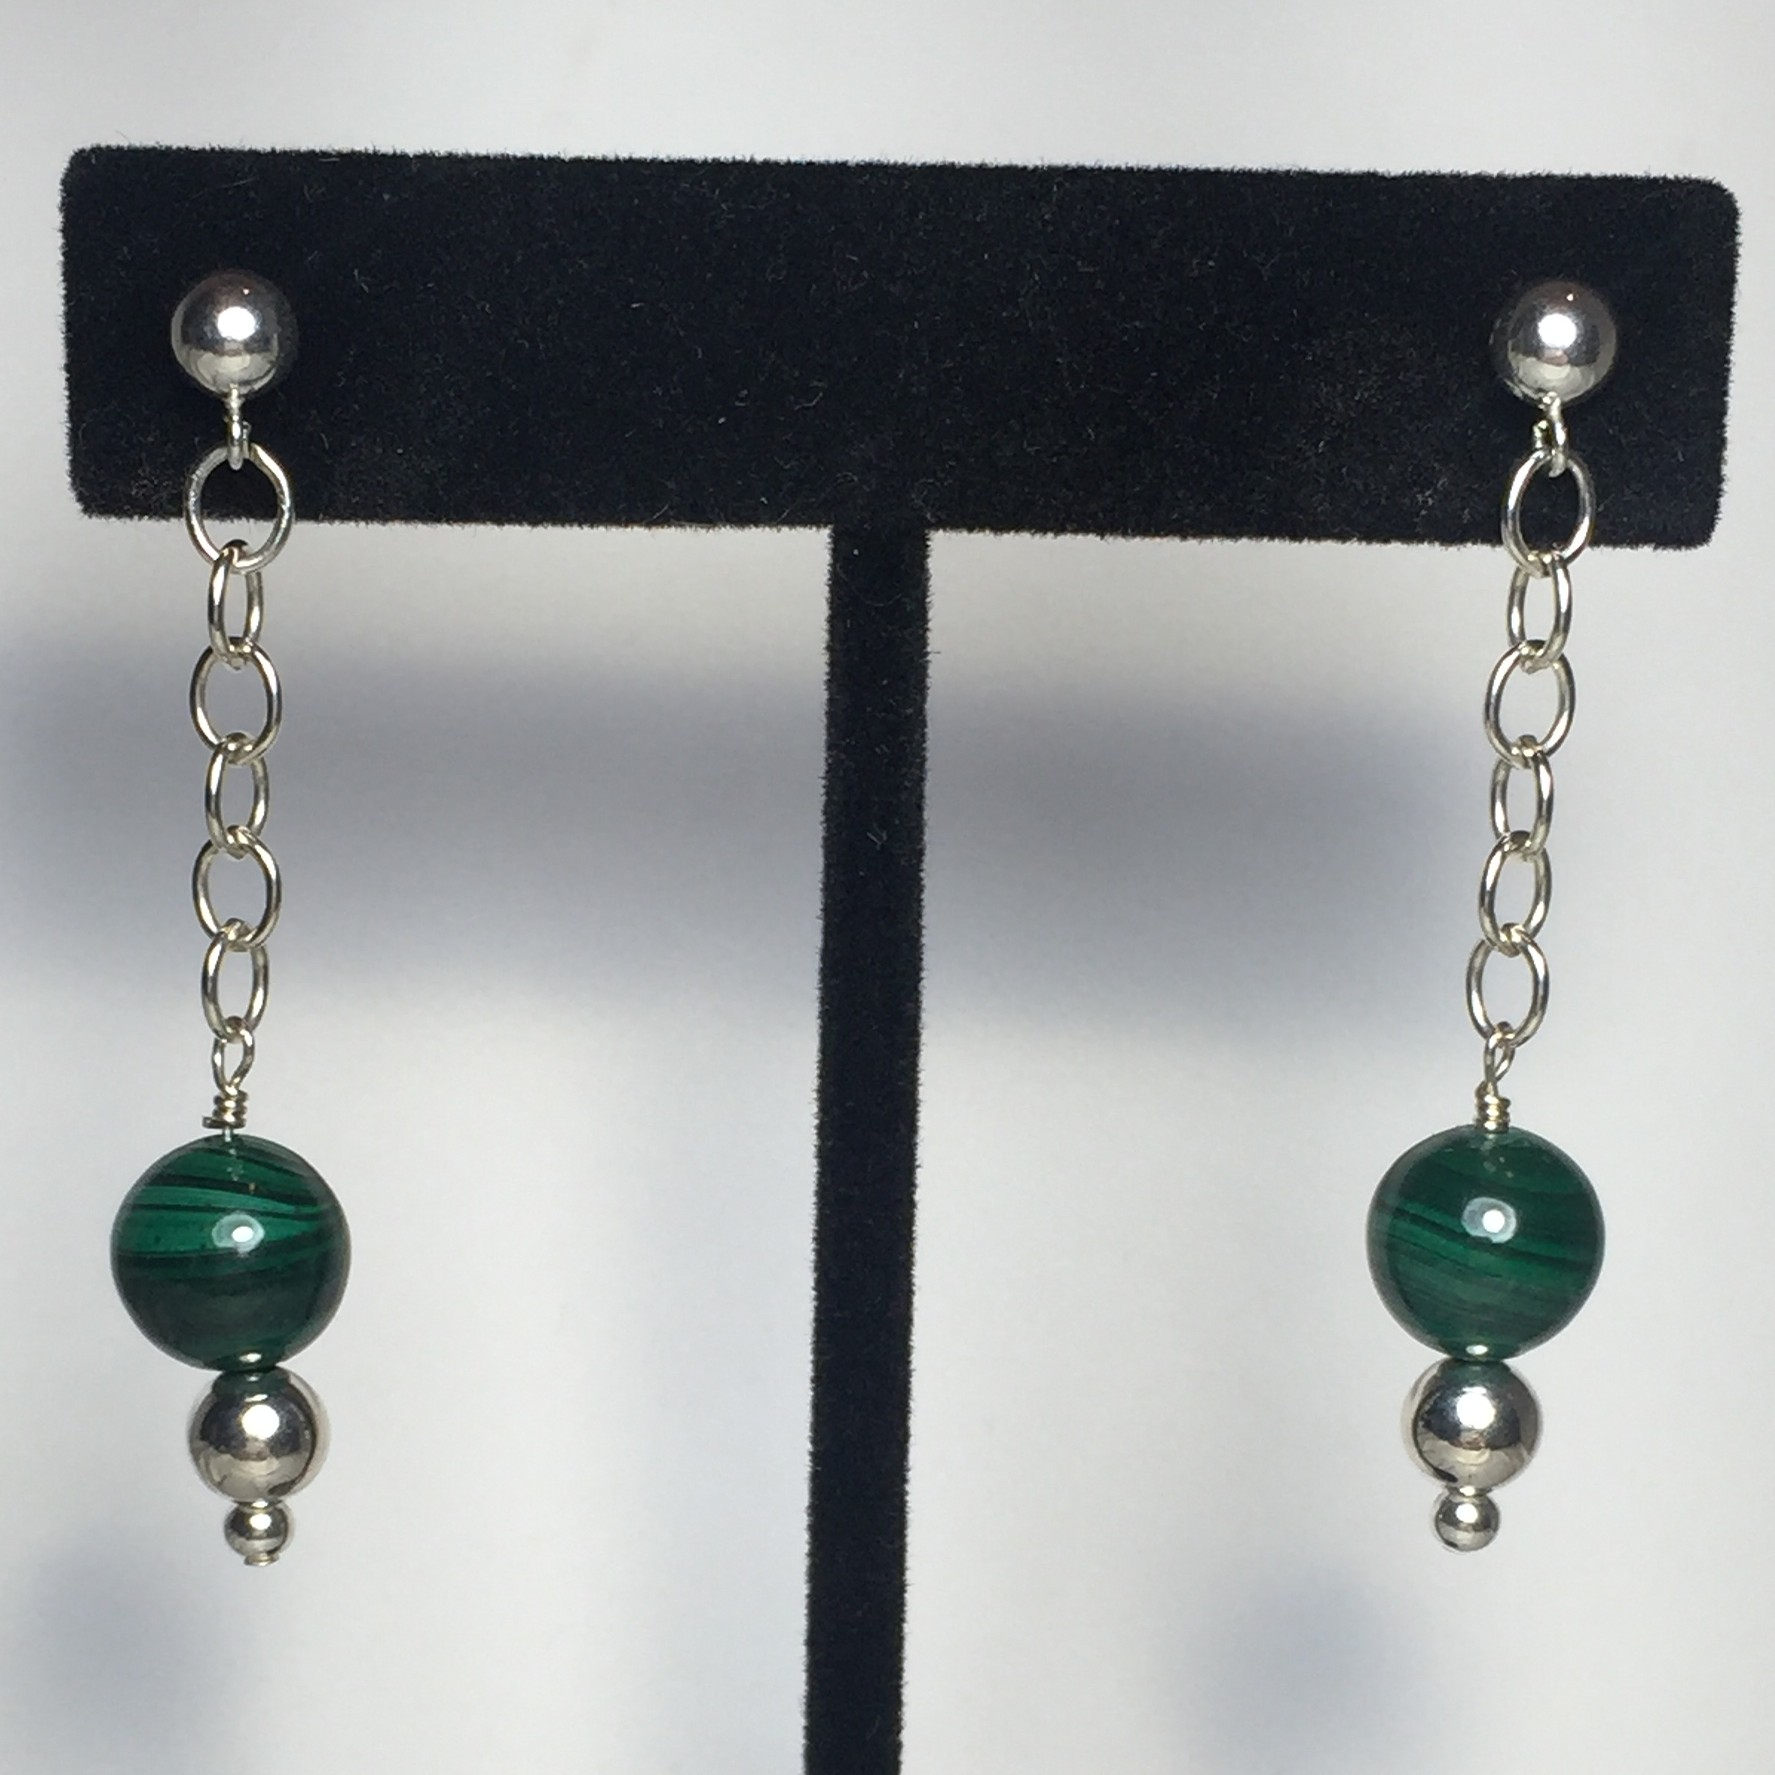 Chain errangs made with Malachite, Amethyst, Peridot, Smokey Quartz, and Sterling Silver